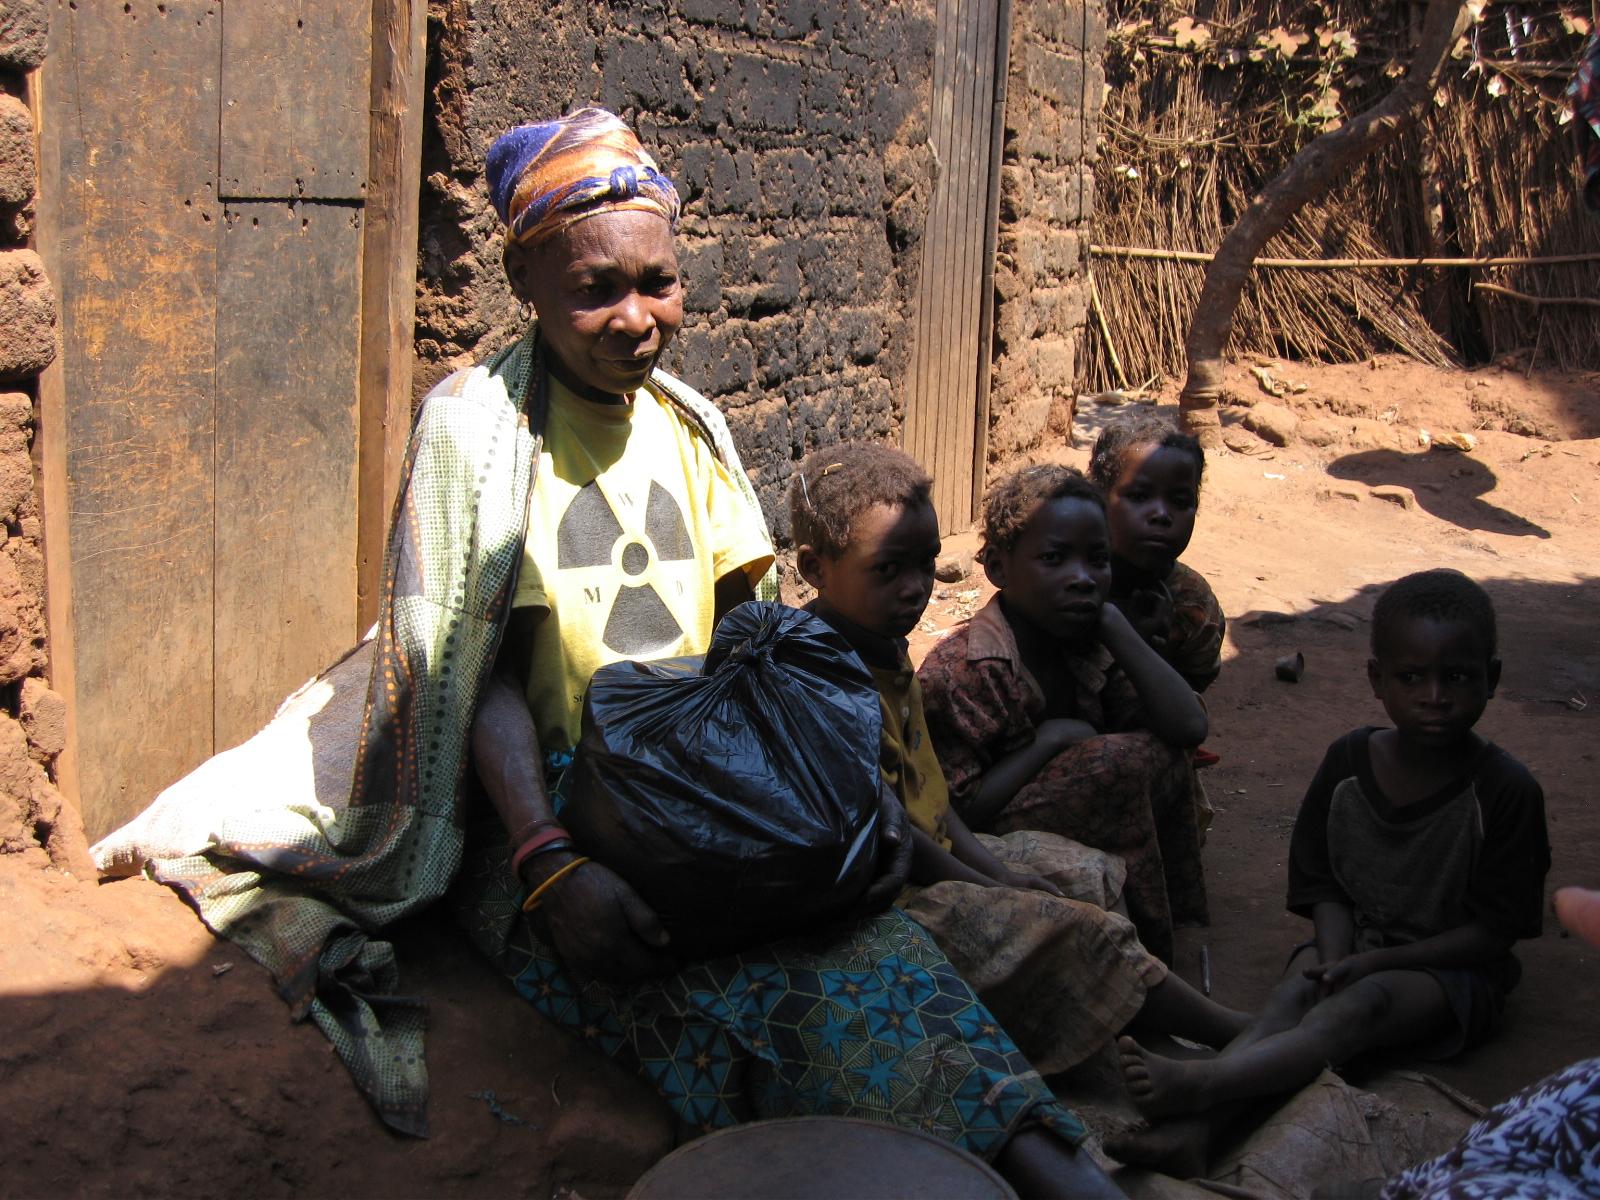 Older African woman sitting on the ground by a rough, brick building and a black plastic bag in her lap, surrounded by four young children.